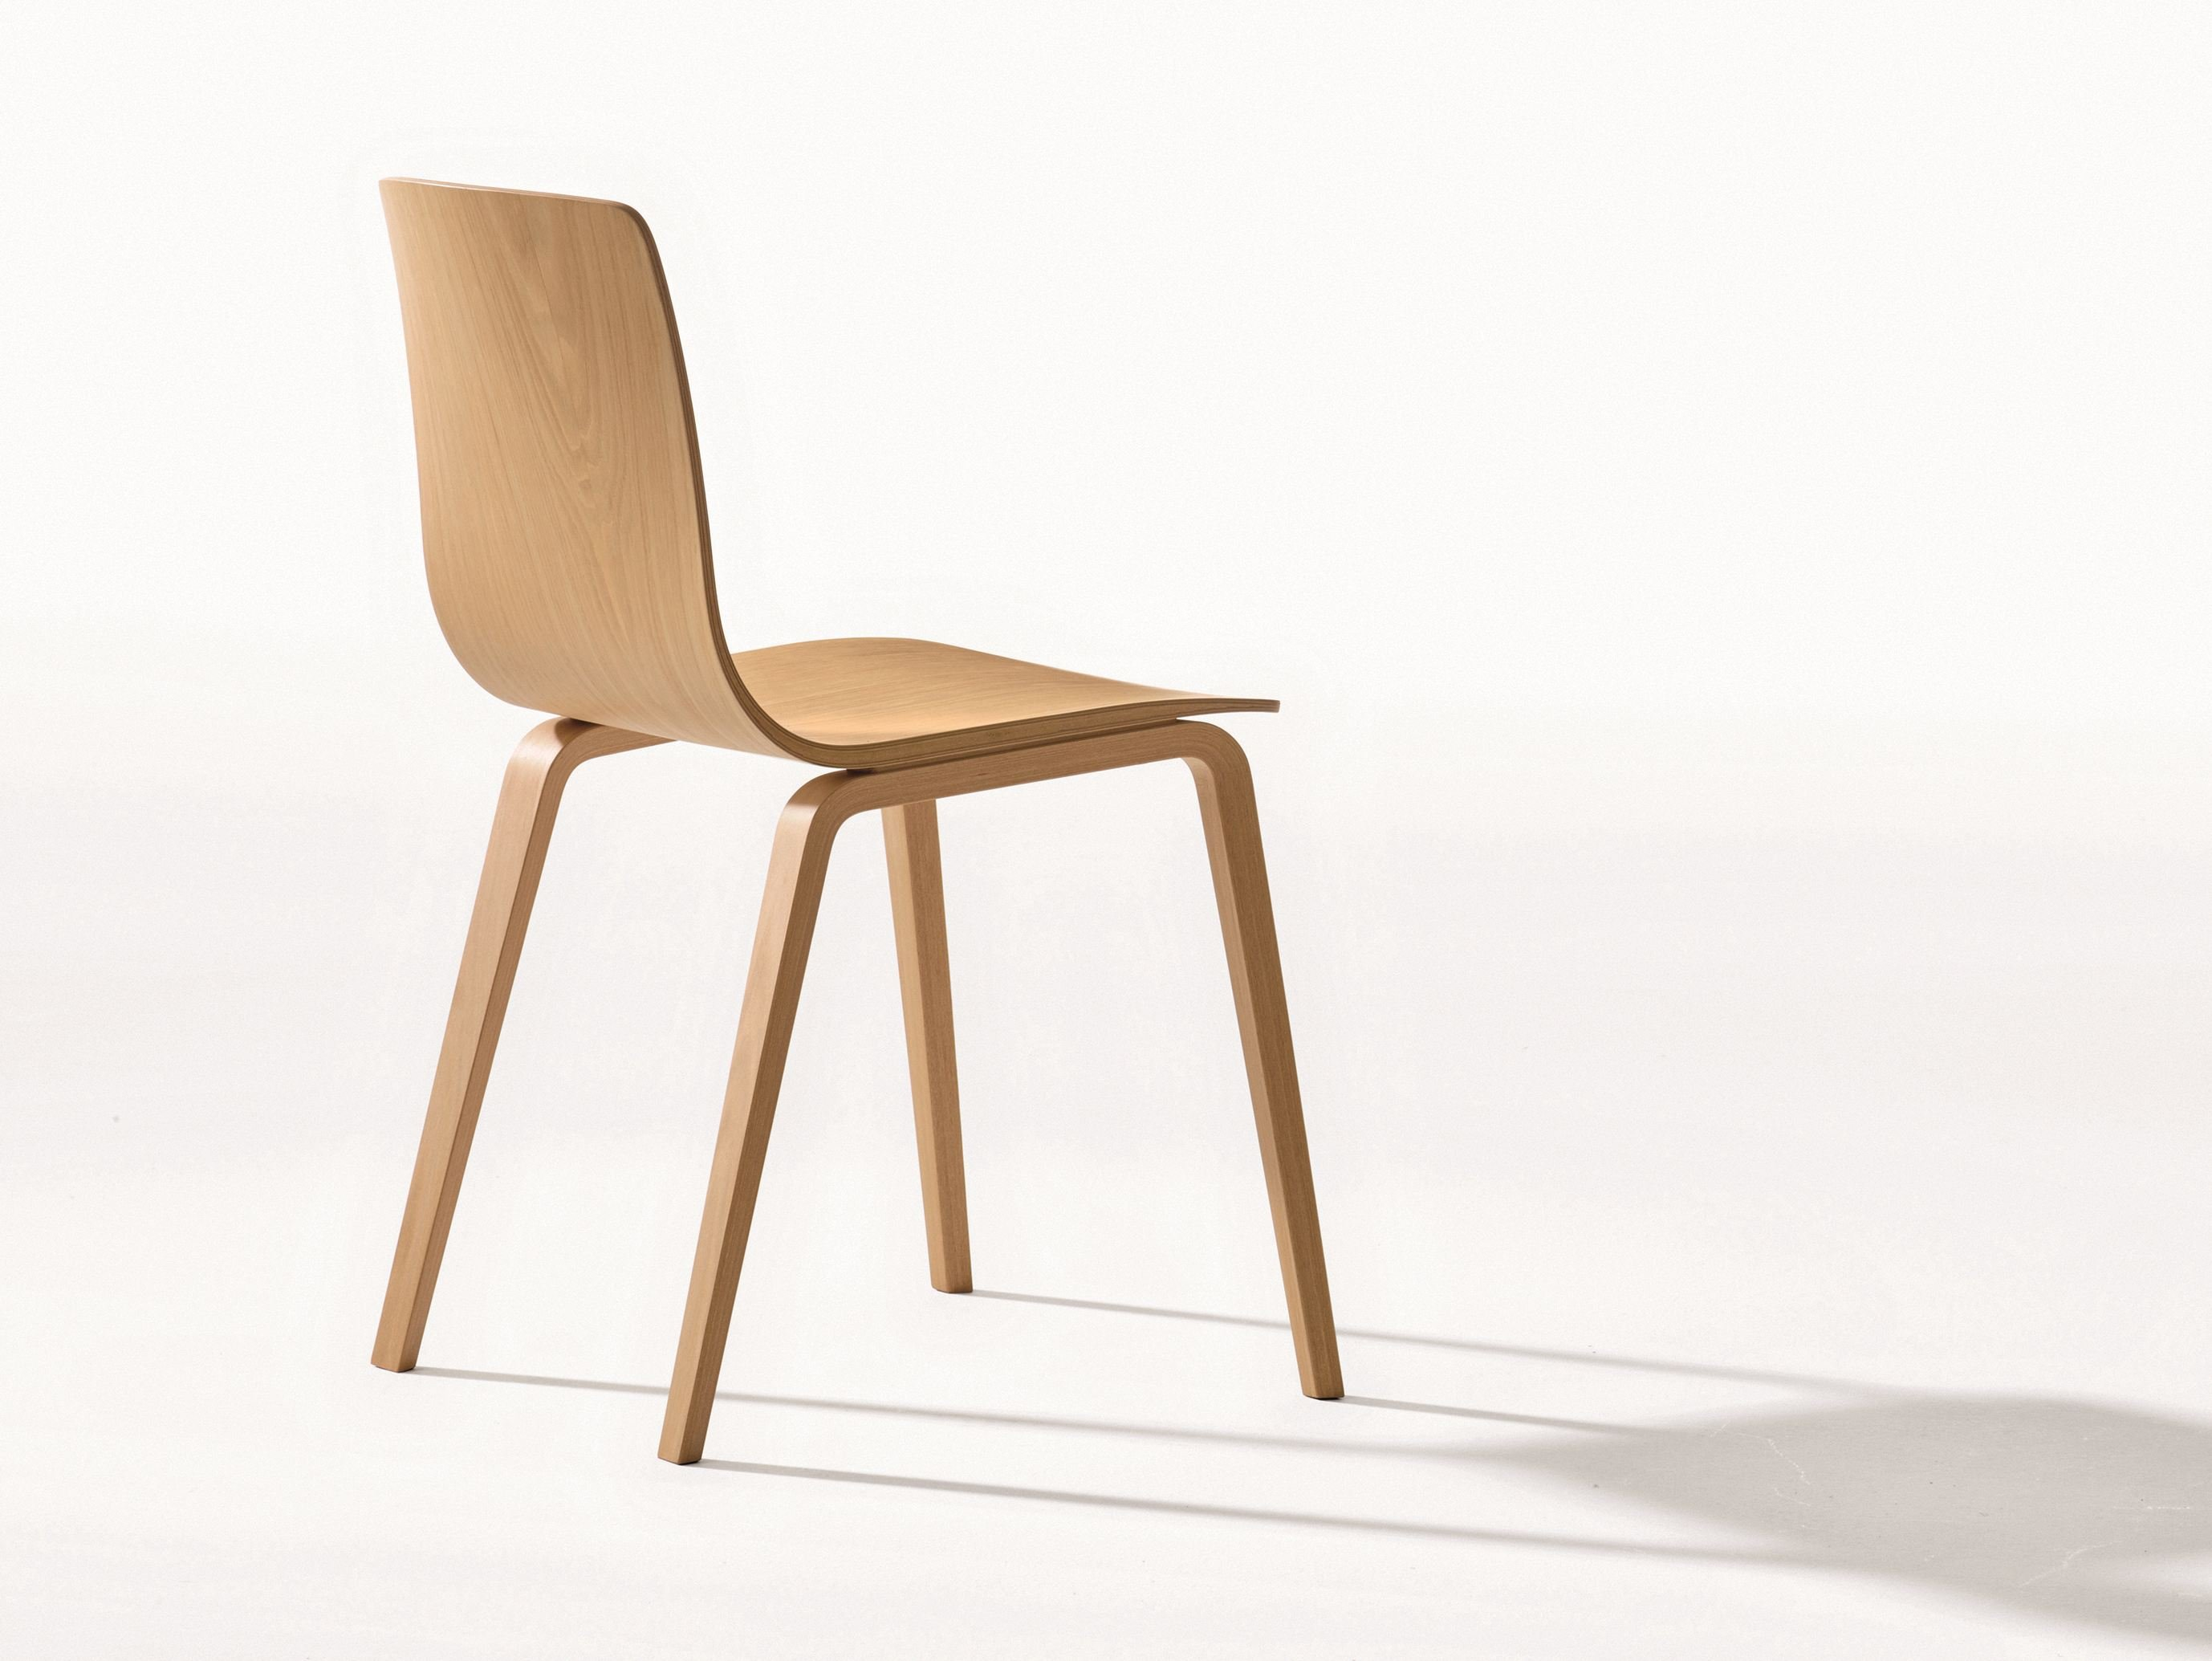 Aava chaise en bois by arper design antti kotilainen for Chaise de designer